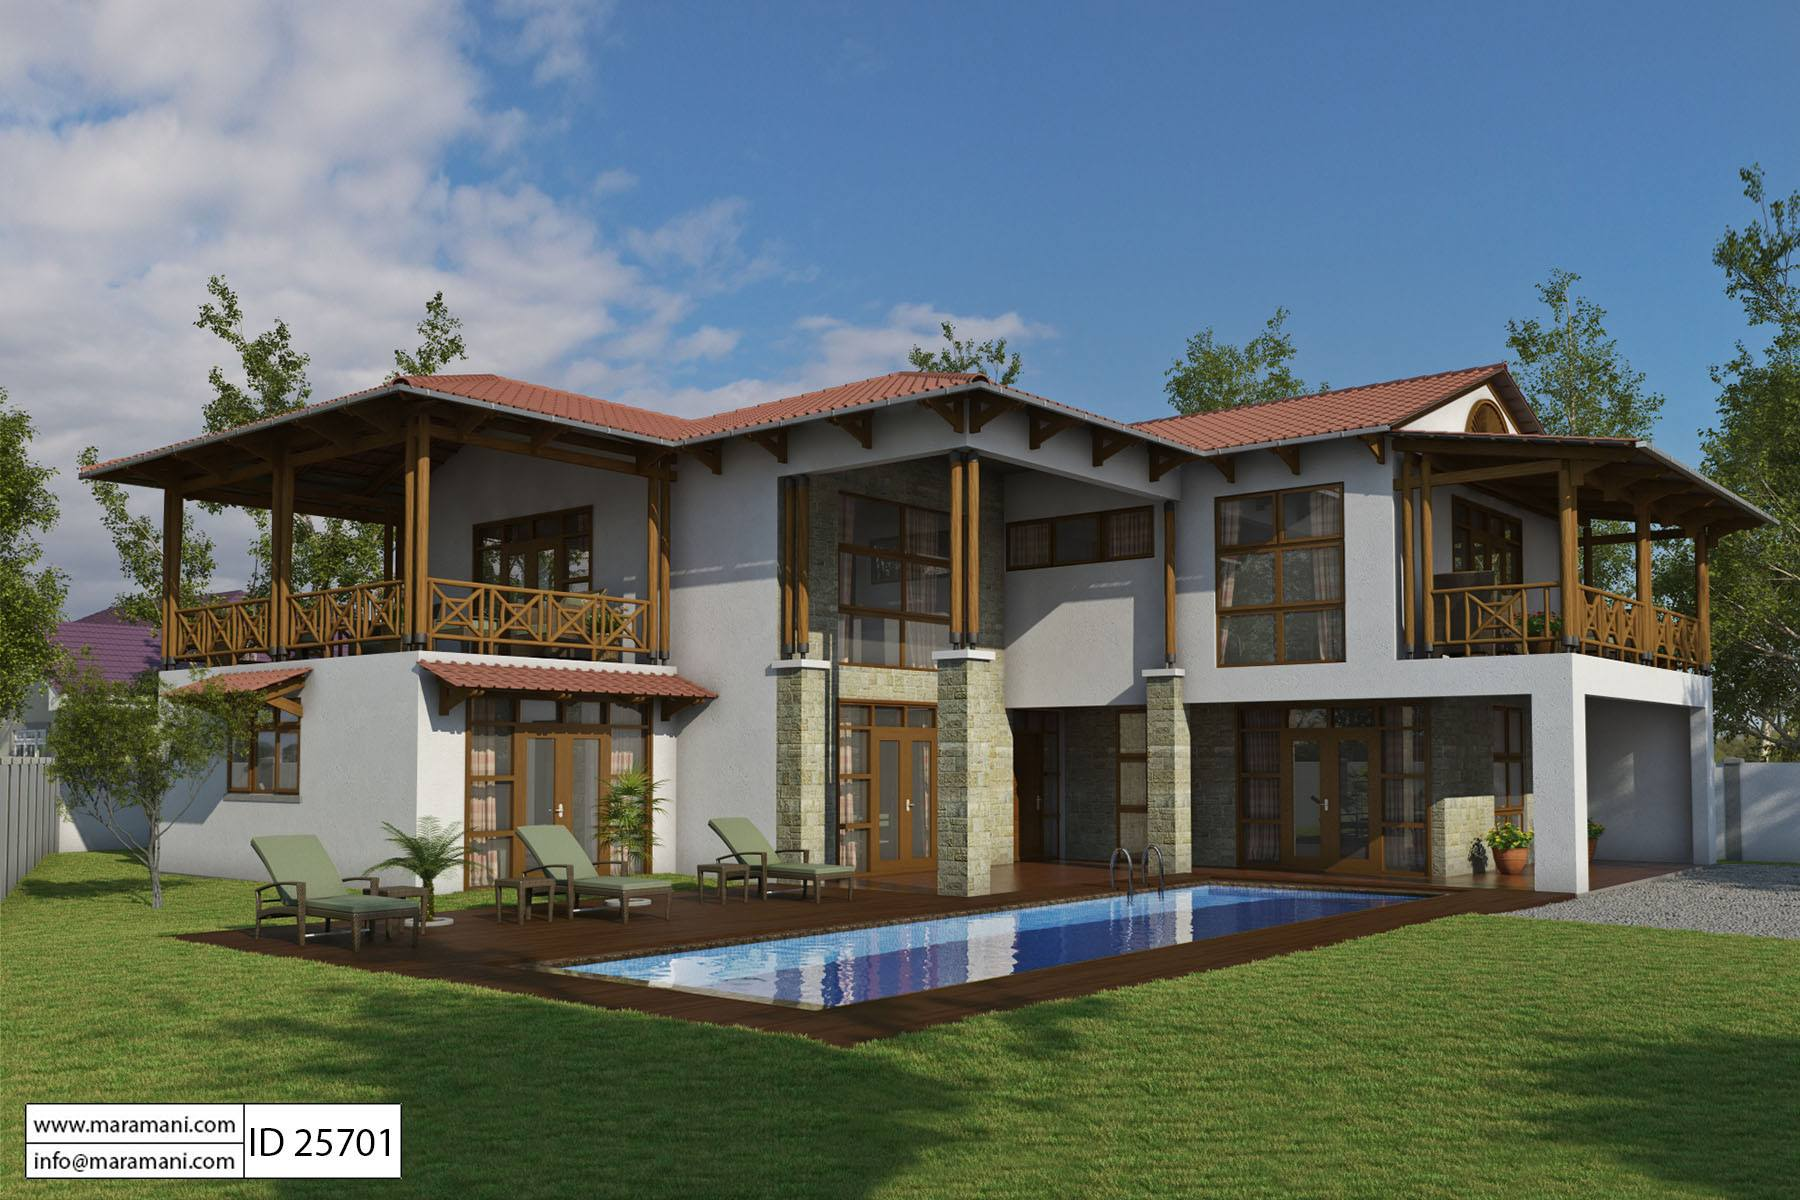 Bali Style House With 5 Bedrooms Id 25701 House Plans